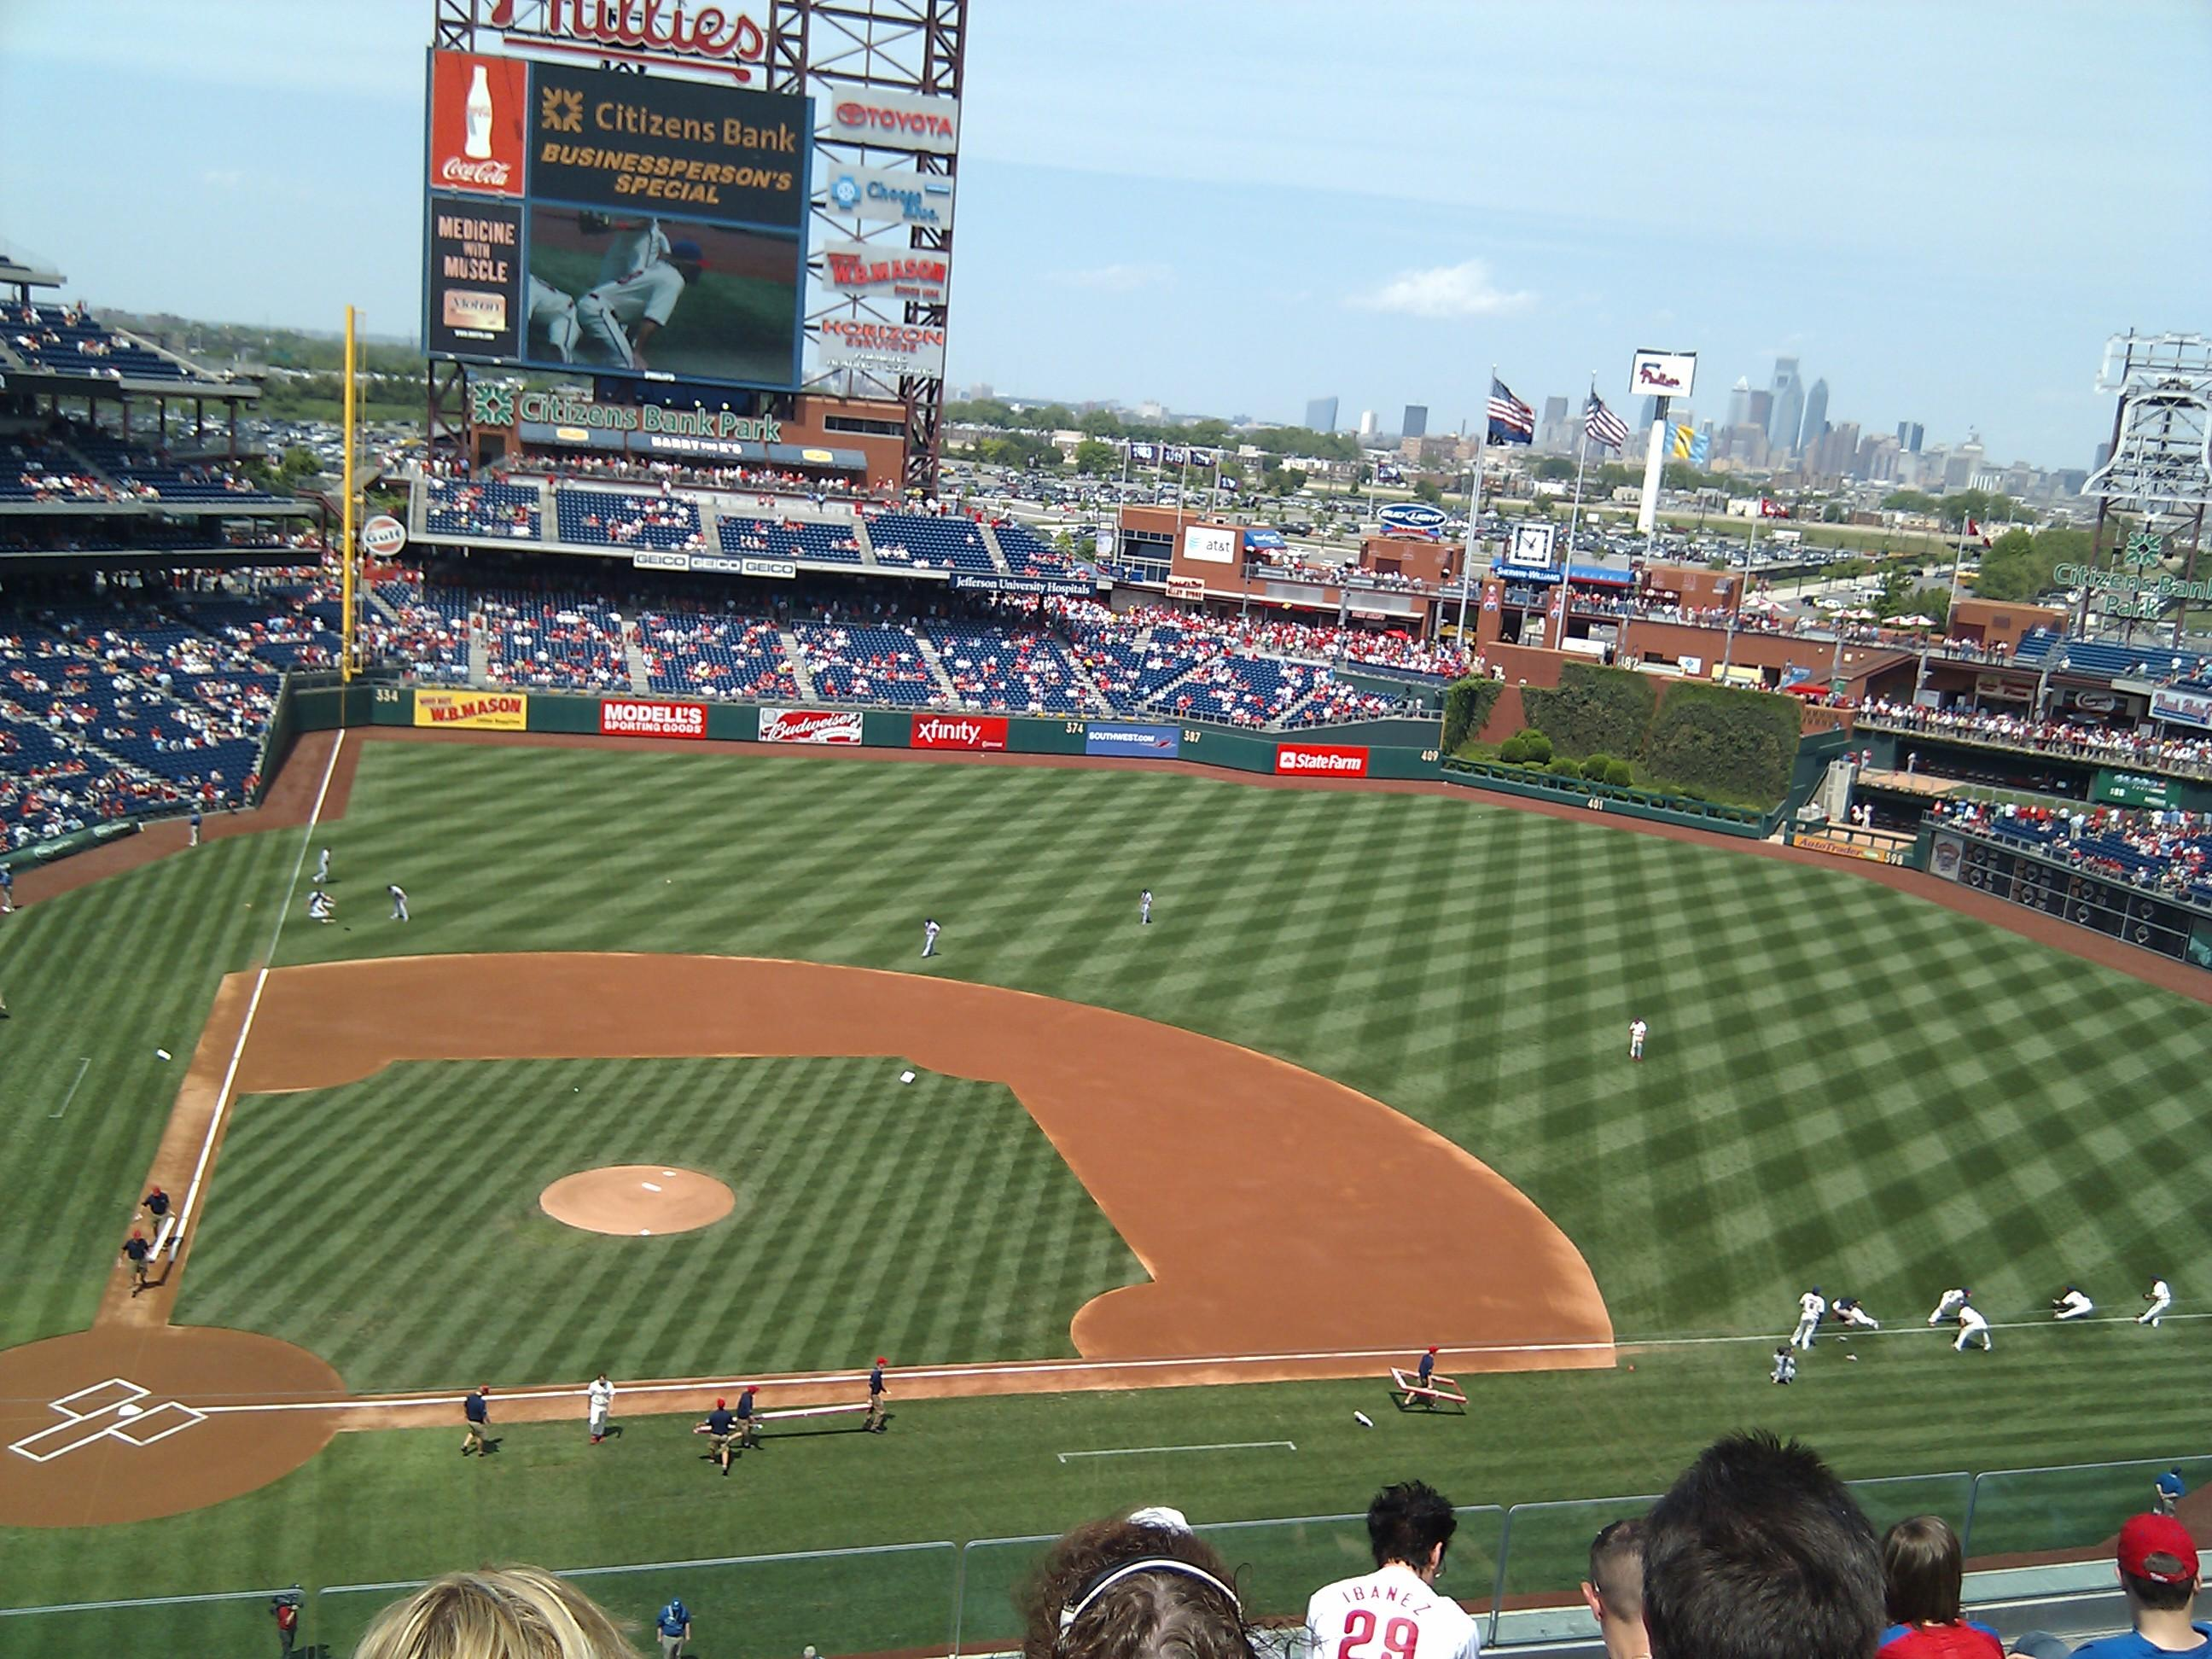 Citizens Bank Park Section 316 Row 6 Seat 21